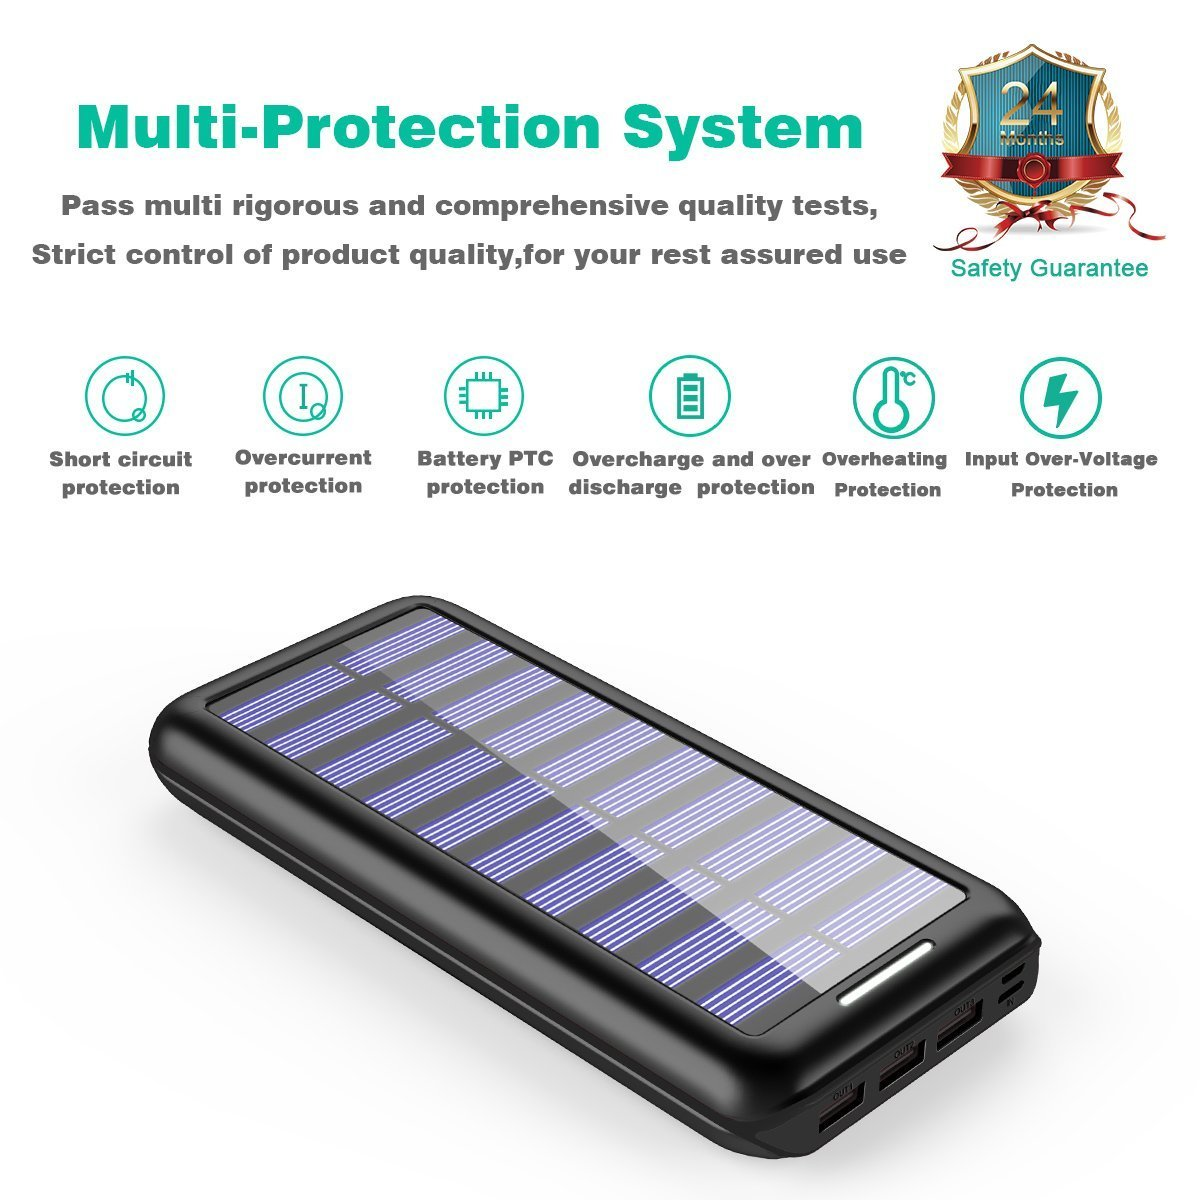 Solar Charger 24000mah Portable Chargerplochy Power Bank Battery With Overcharge Protection Electronic Phone 3 Fast Charging Usb Port And Dual Input External Pack For All